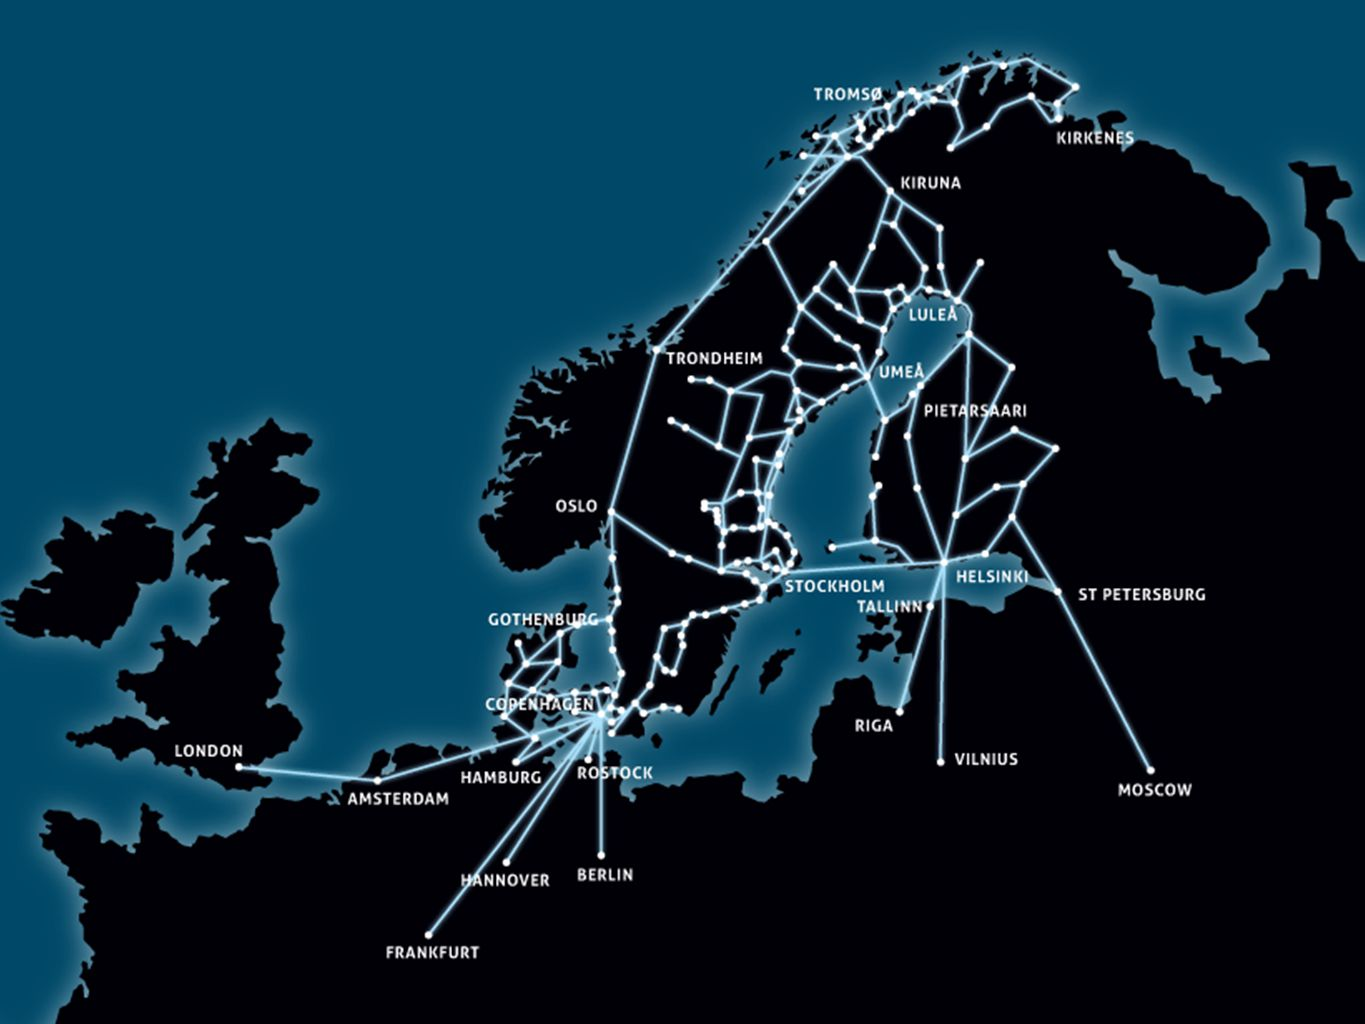 PROGRAM FOR REGIONAL DEVELOPMENT •Economic growth depends on well- developed broadband infrastructure •Information society for all through the continued expansion of broadband network •The basic requirement for strengthening competitiveness and prosperity in Norrbotten